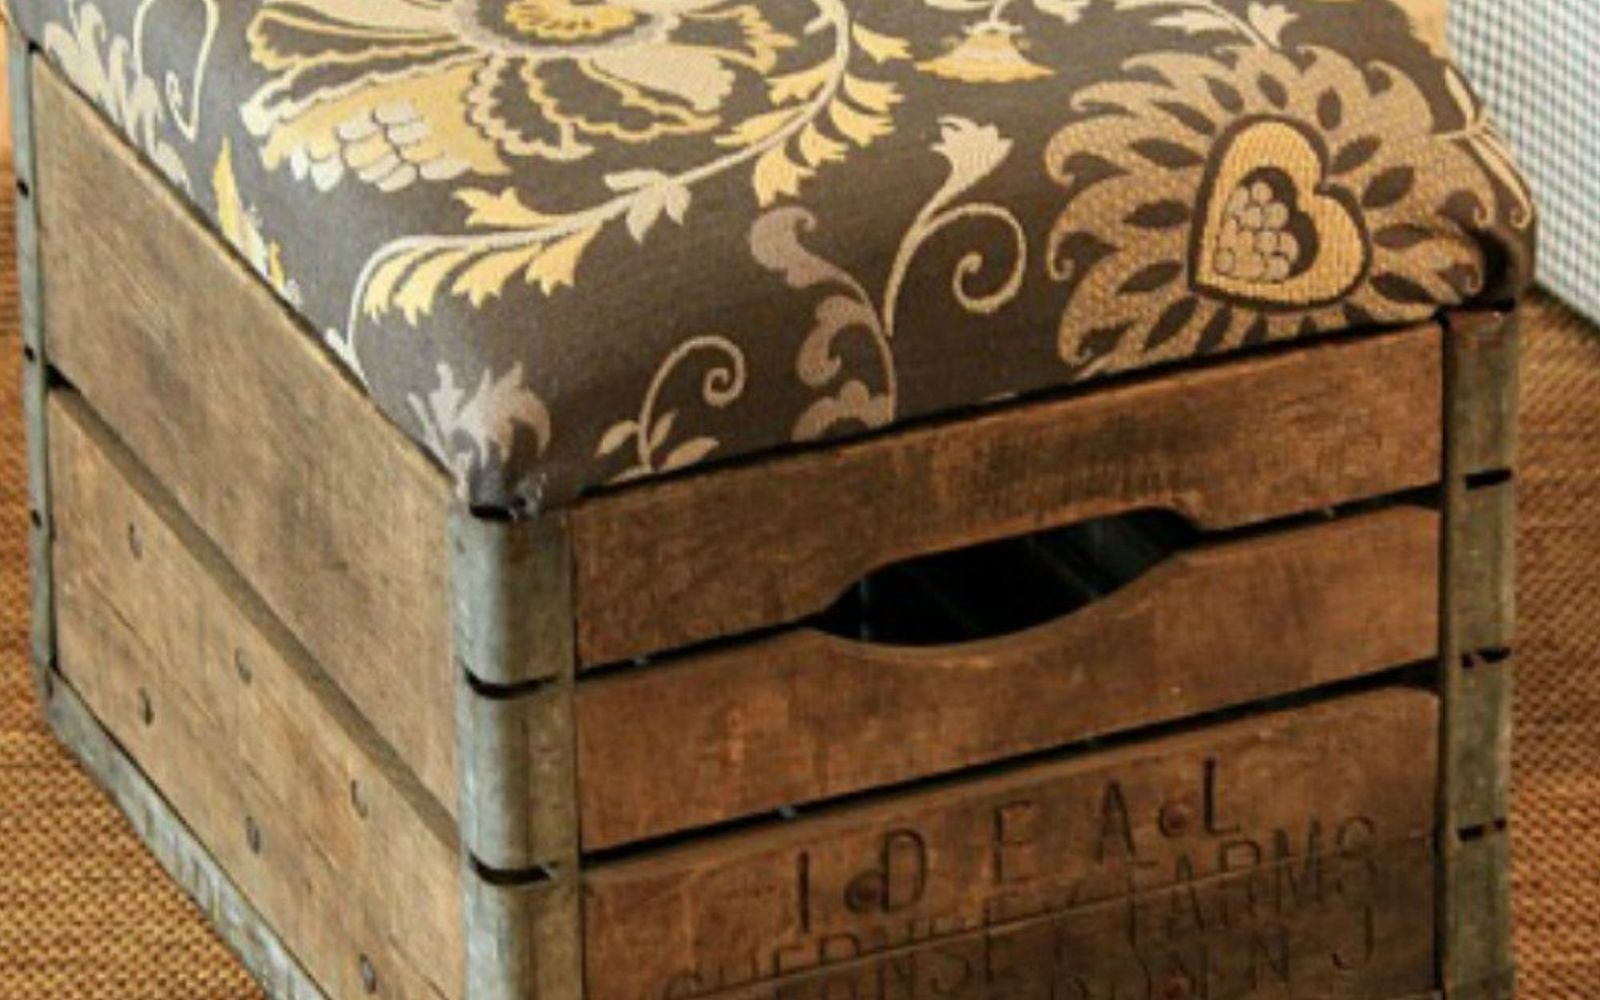 s 12 gorgeous ottoman ideas that will make you want to put your feet up, painted furniture, Add a cushion to a vintage milk crate